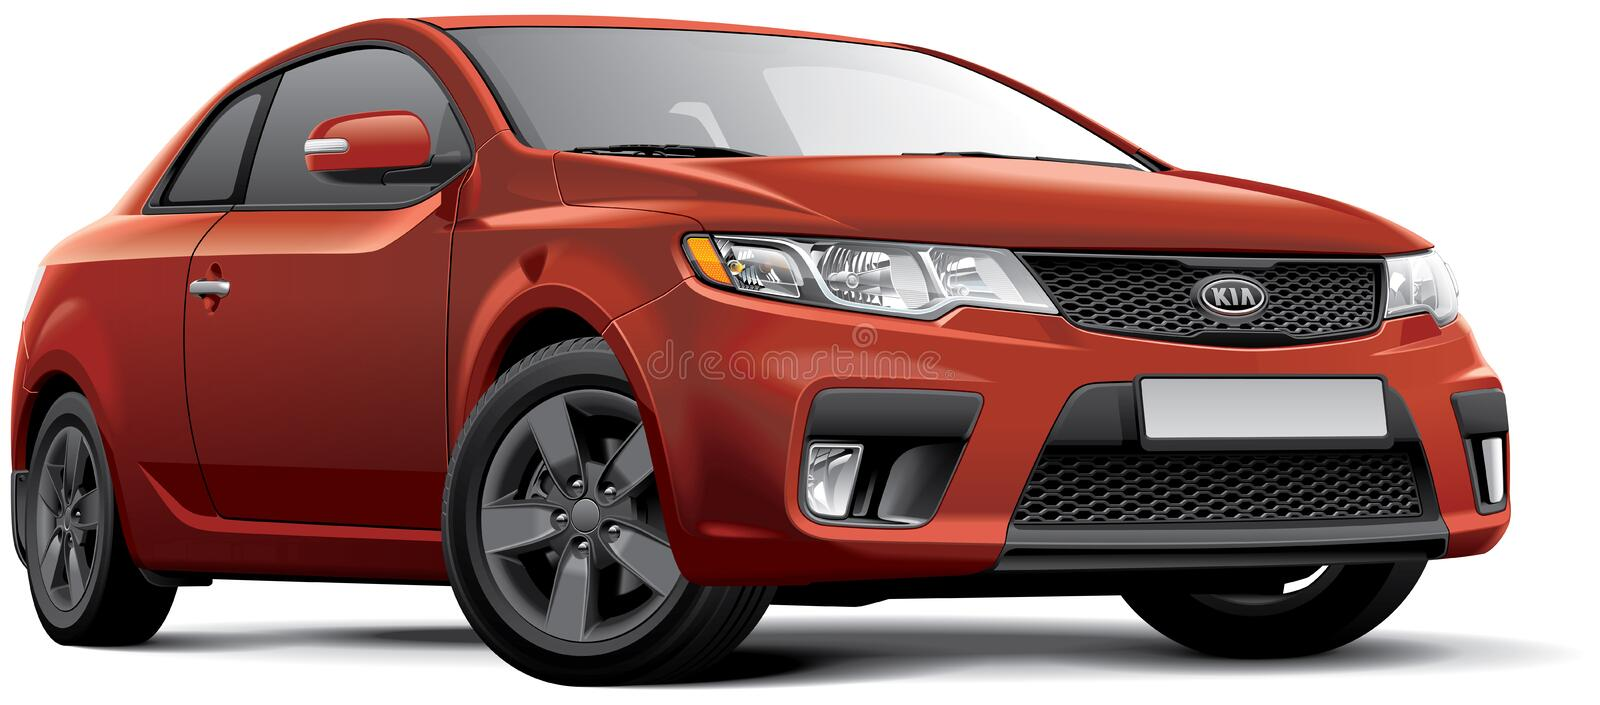 Kia Cerato Koup. High quality vector image of Korean compact coupe - Kia Cerato Koup, isolated on white background. File contains gradients, blends and